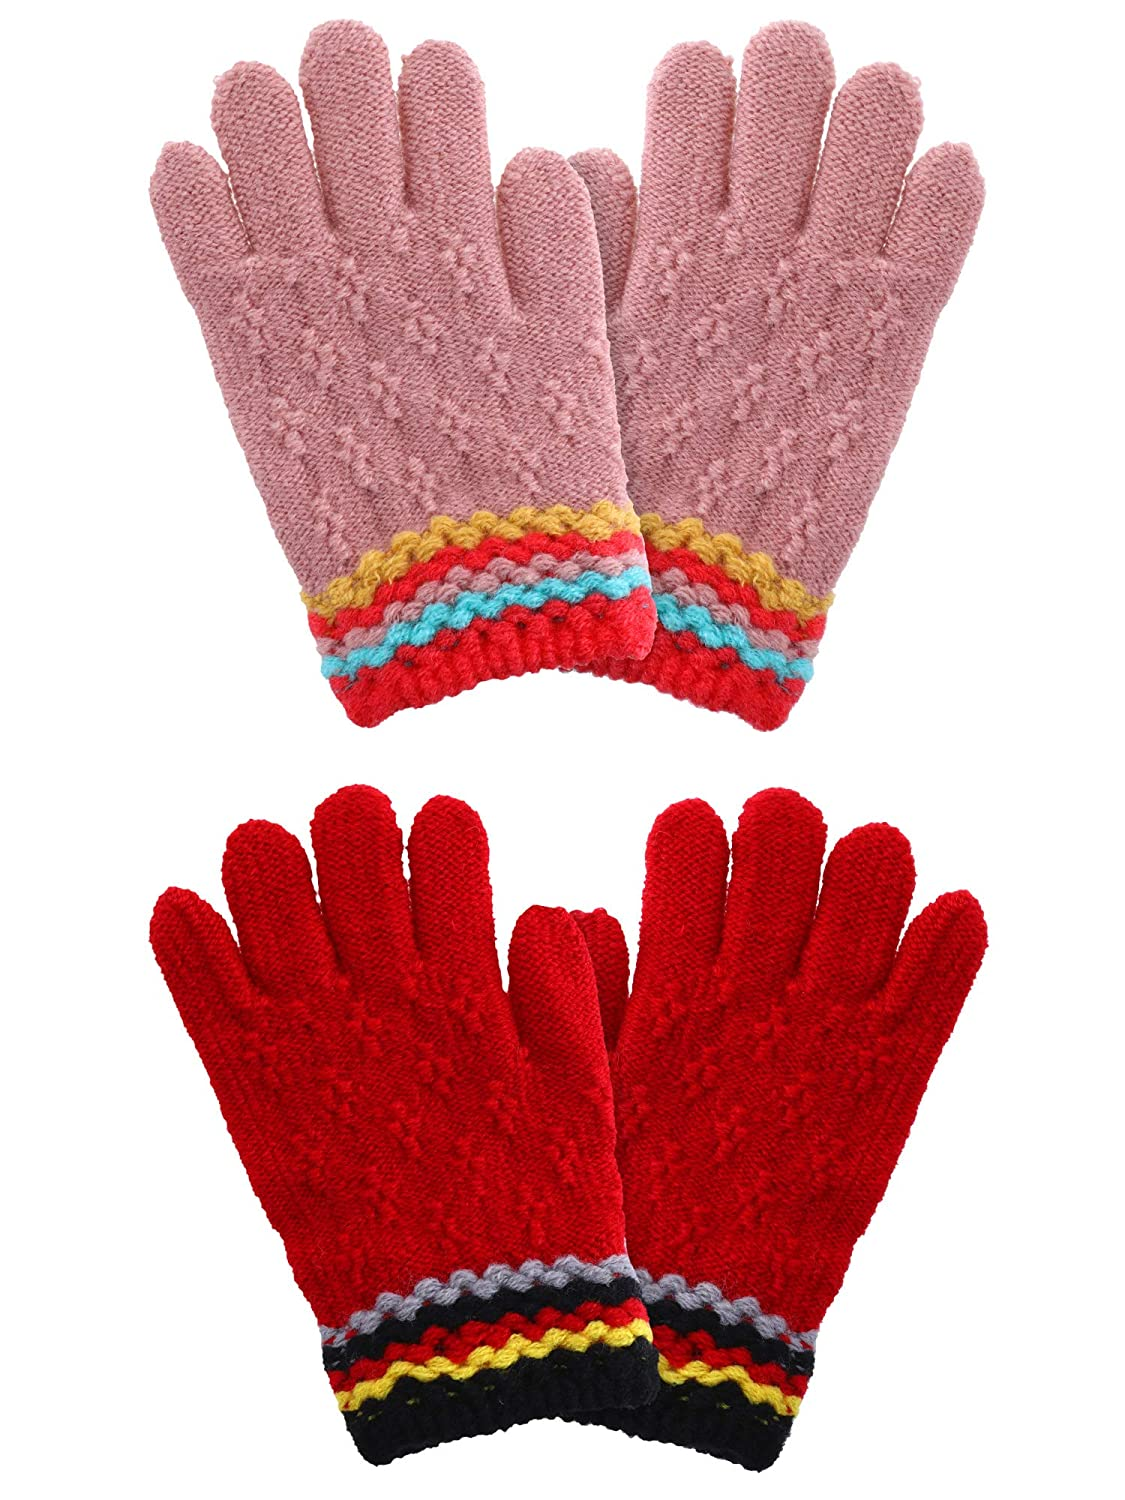 Boao 2 Pairs Kids Winter Gloves Full Finger Knitted Gloves Warm Stretchy Mittens for Boys Girls Supplies